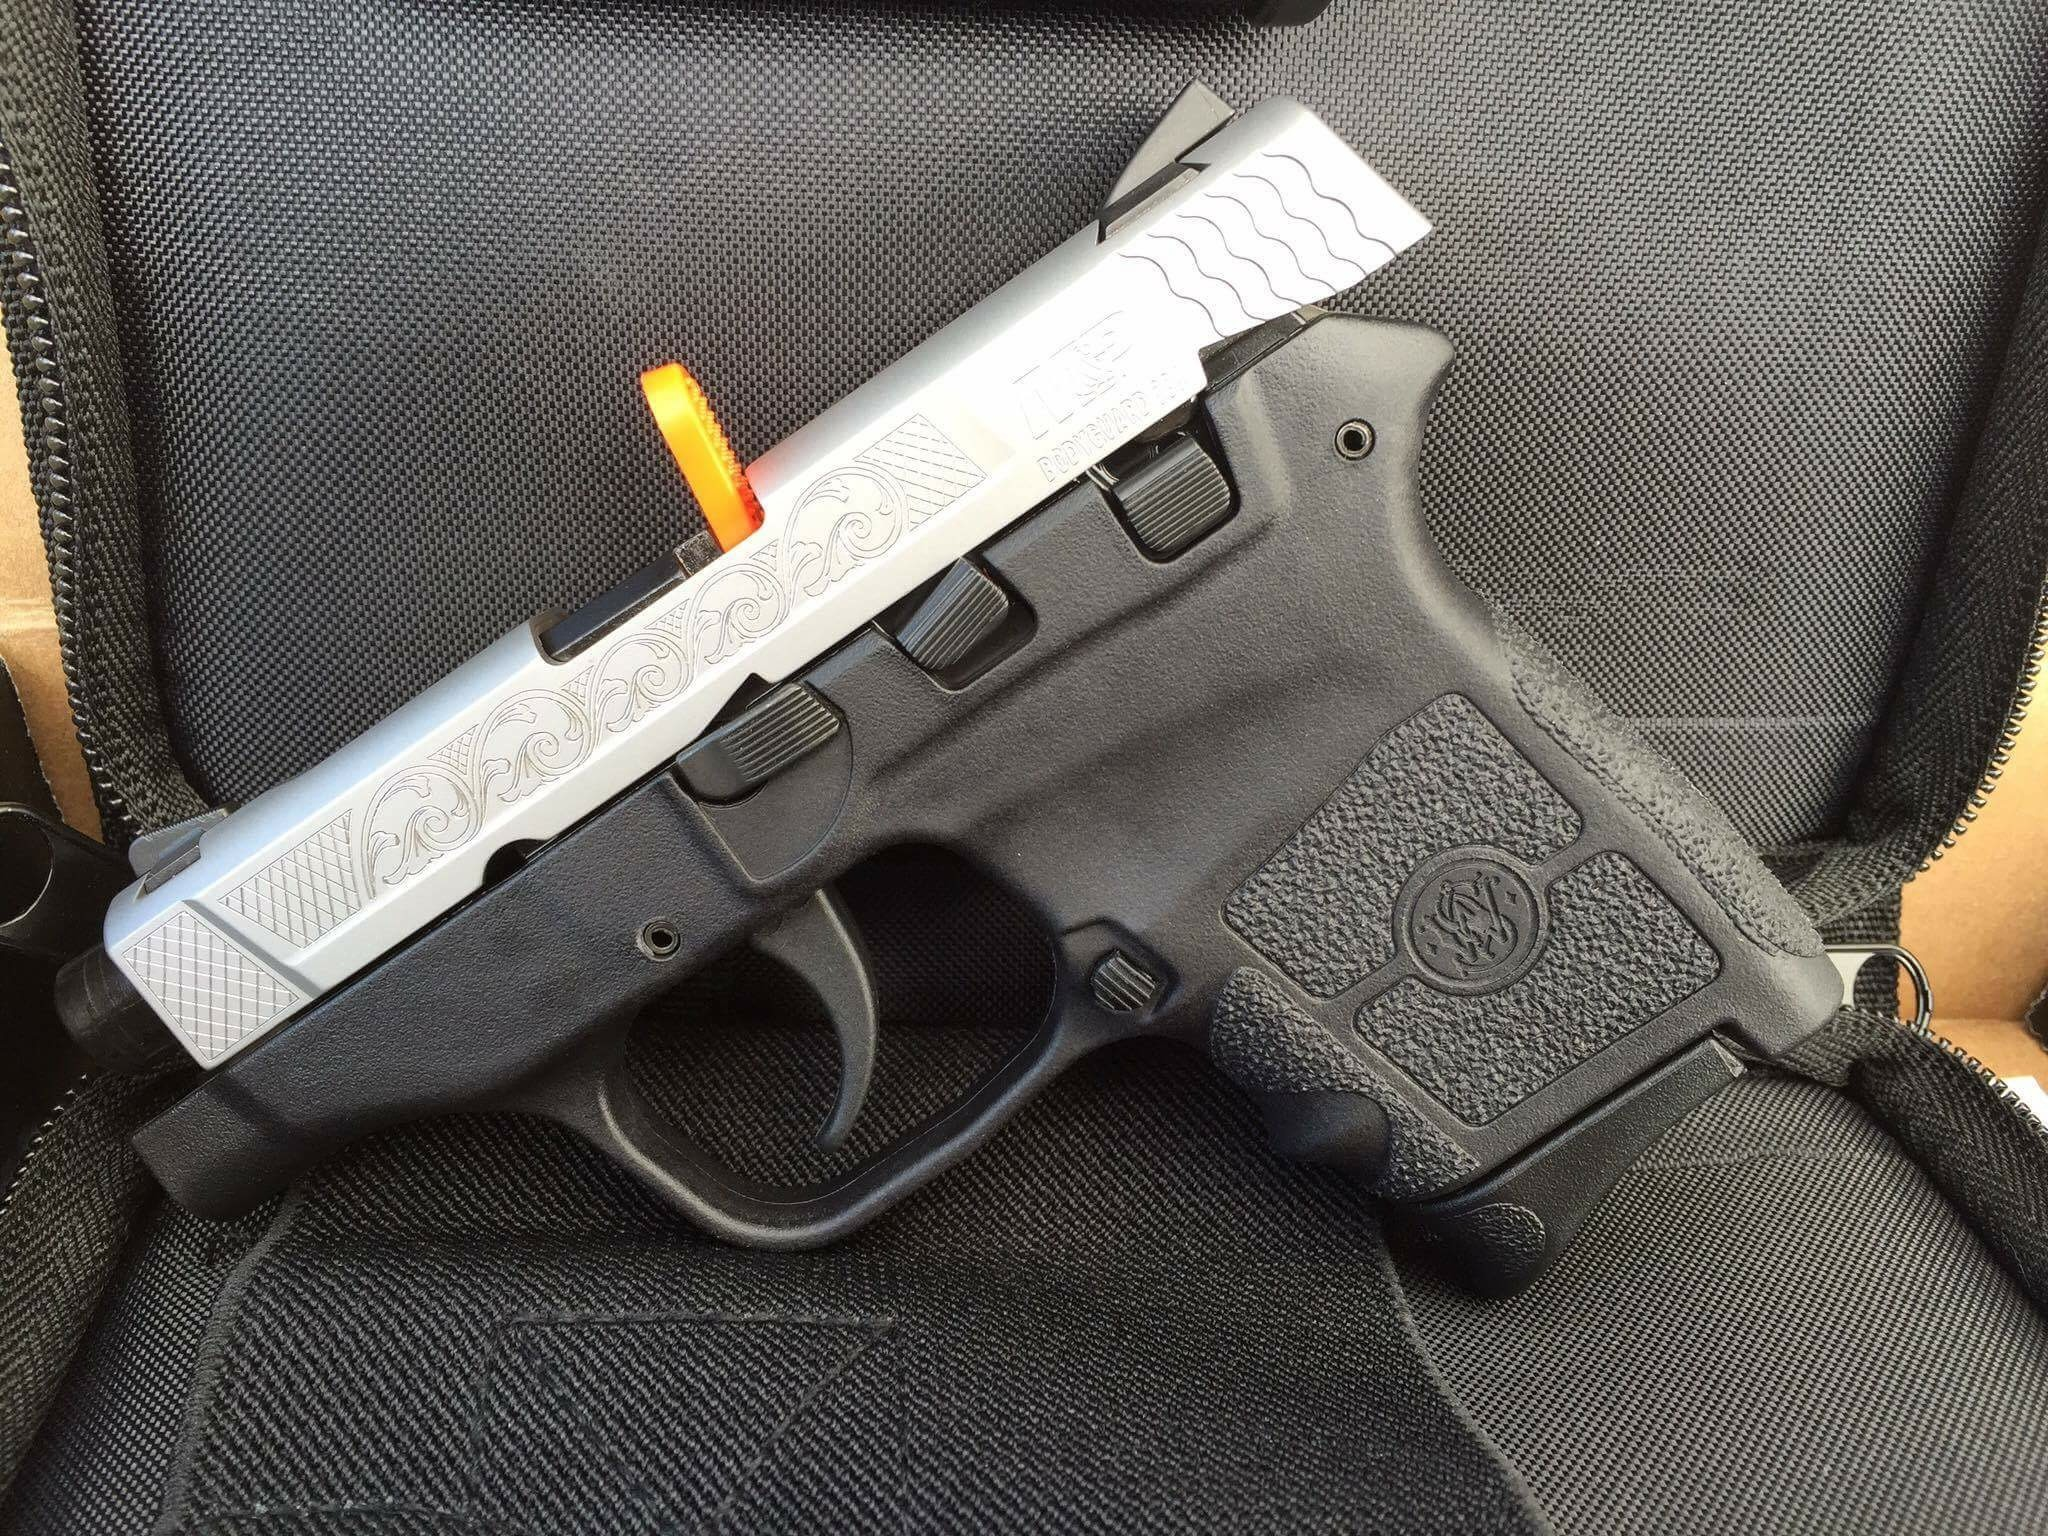 Engraved Smith and Wesson M&P Bodyguard 380